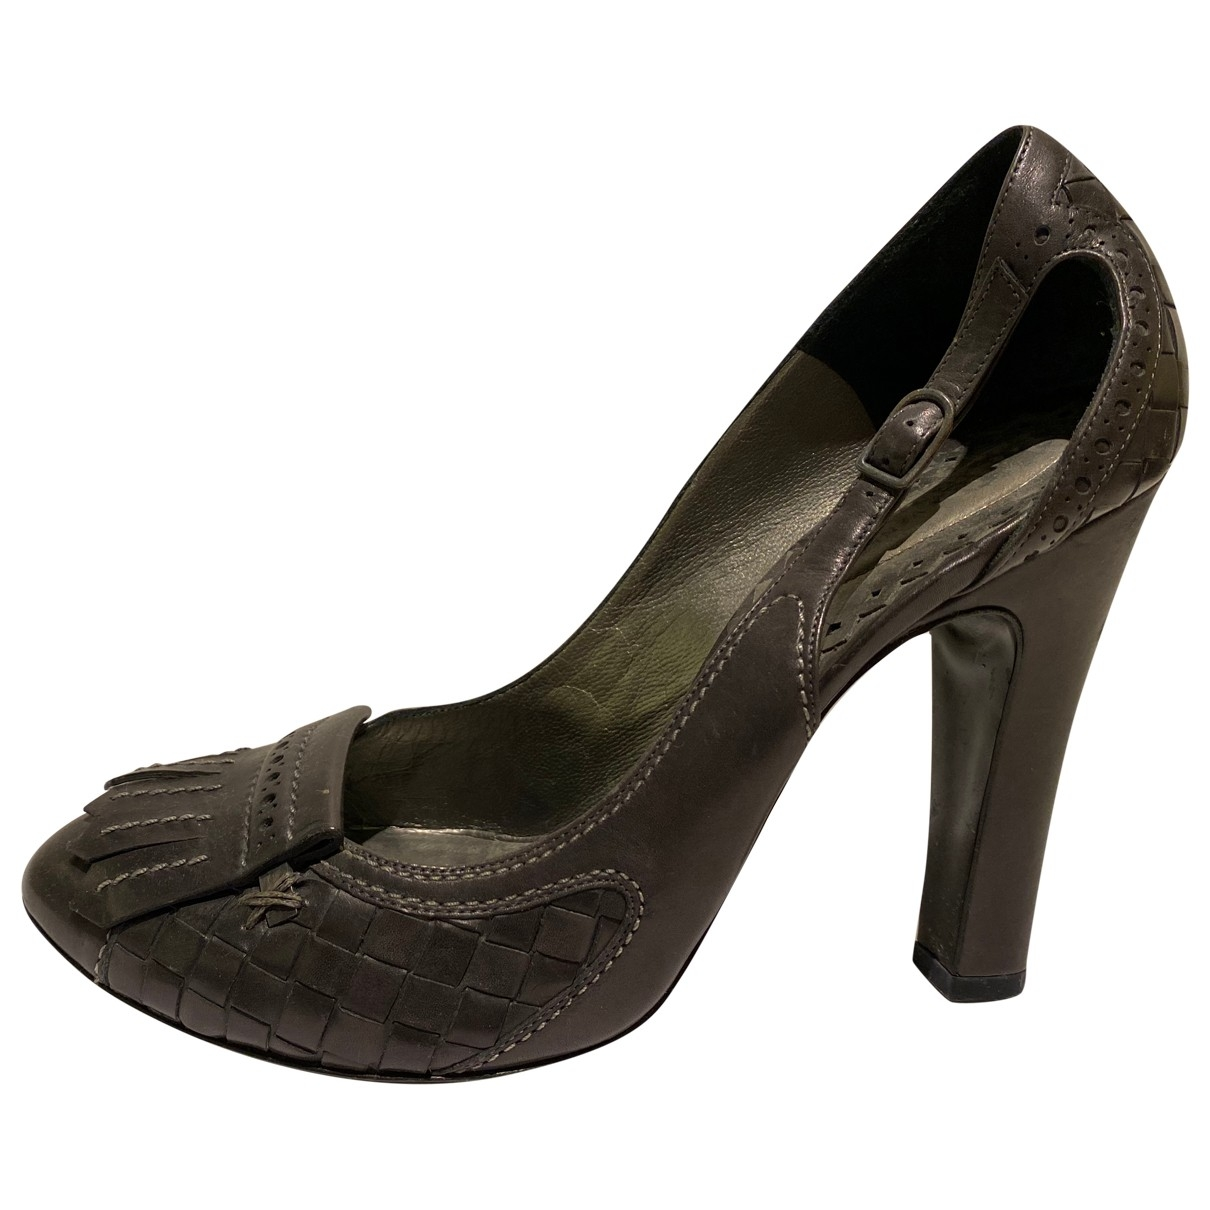 Bottega Veneta \N Grey Leather Heels for Women 40 EU